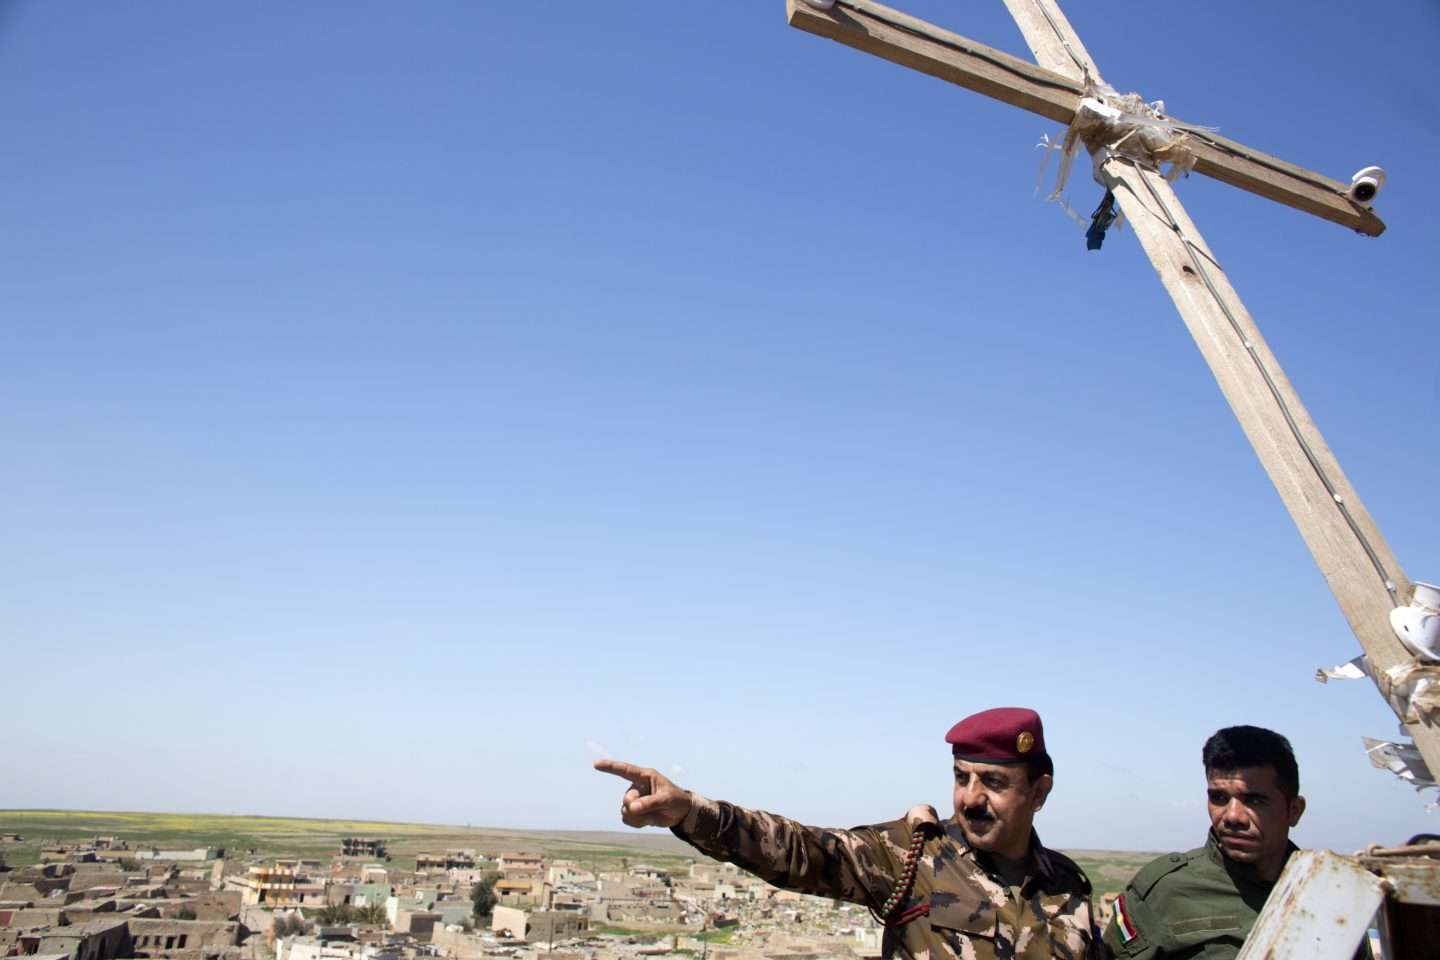 The Peshmerga's Major Jaffer points to a cemetery about half a mile away